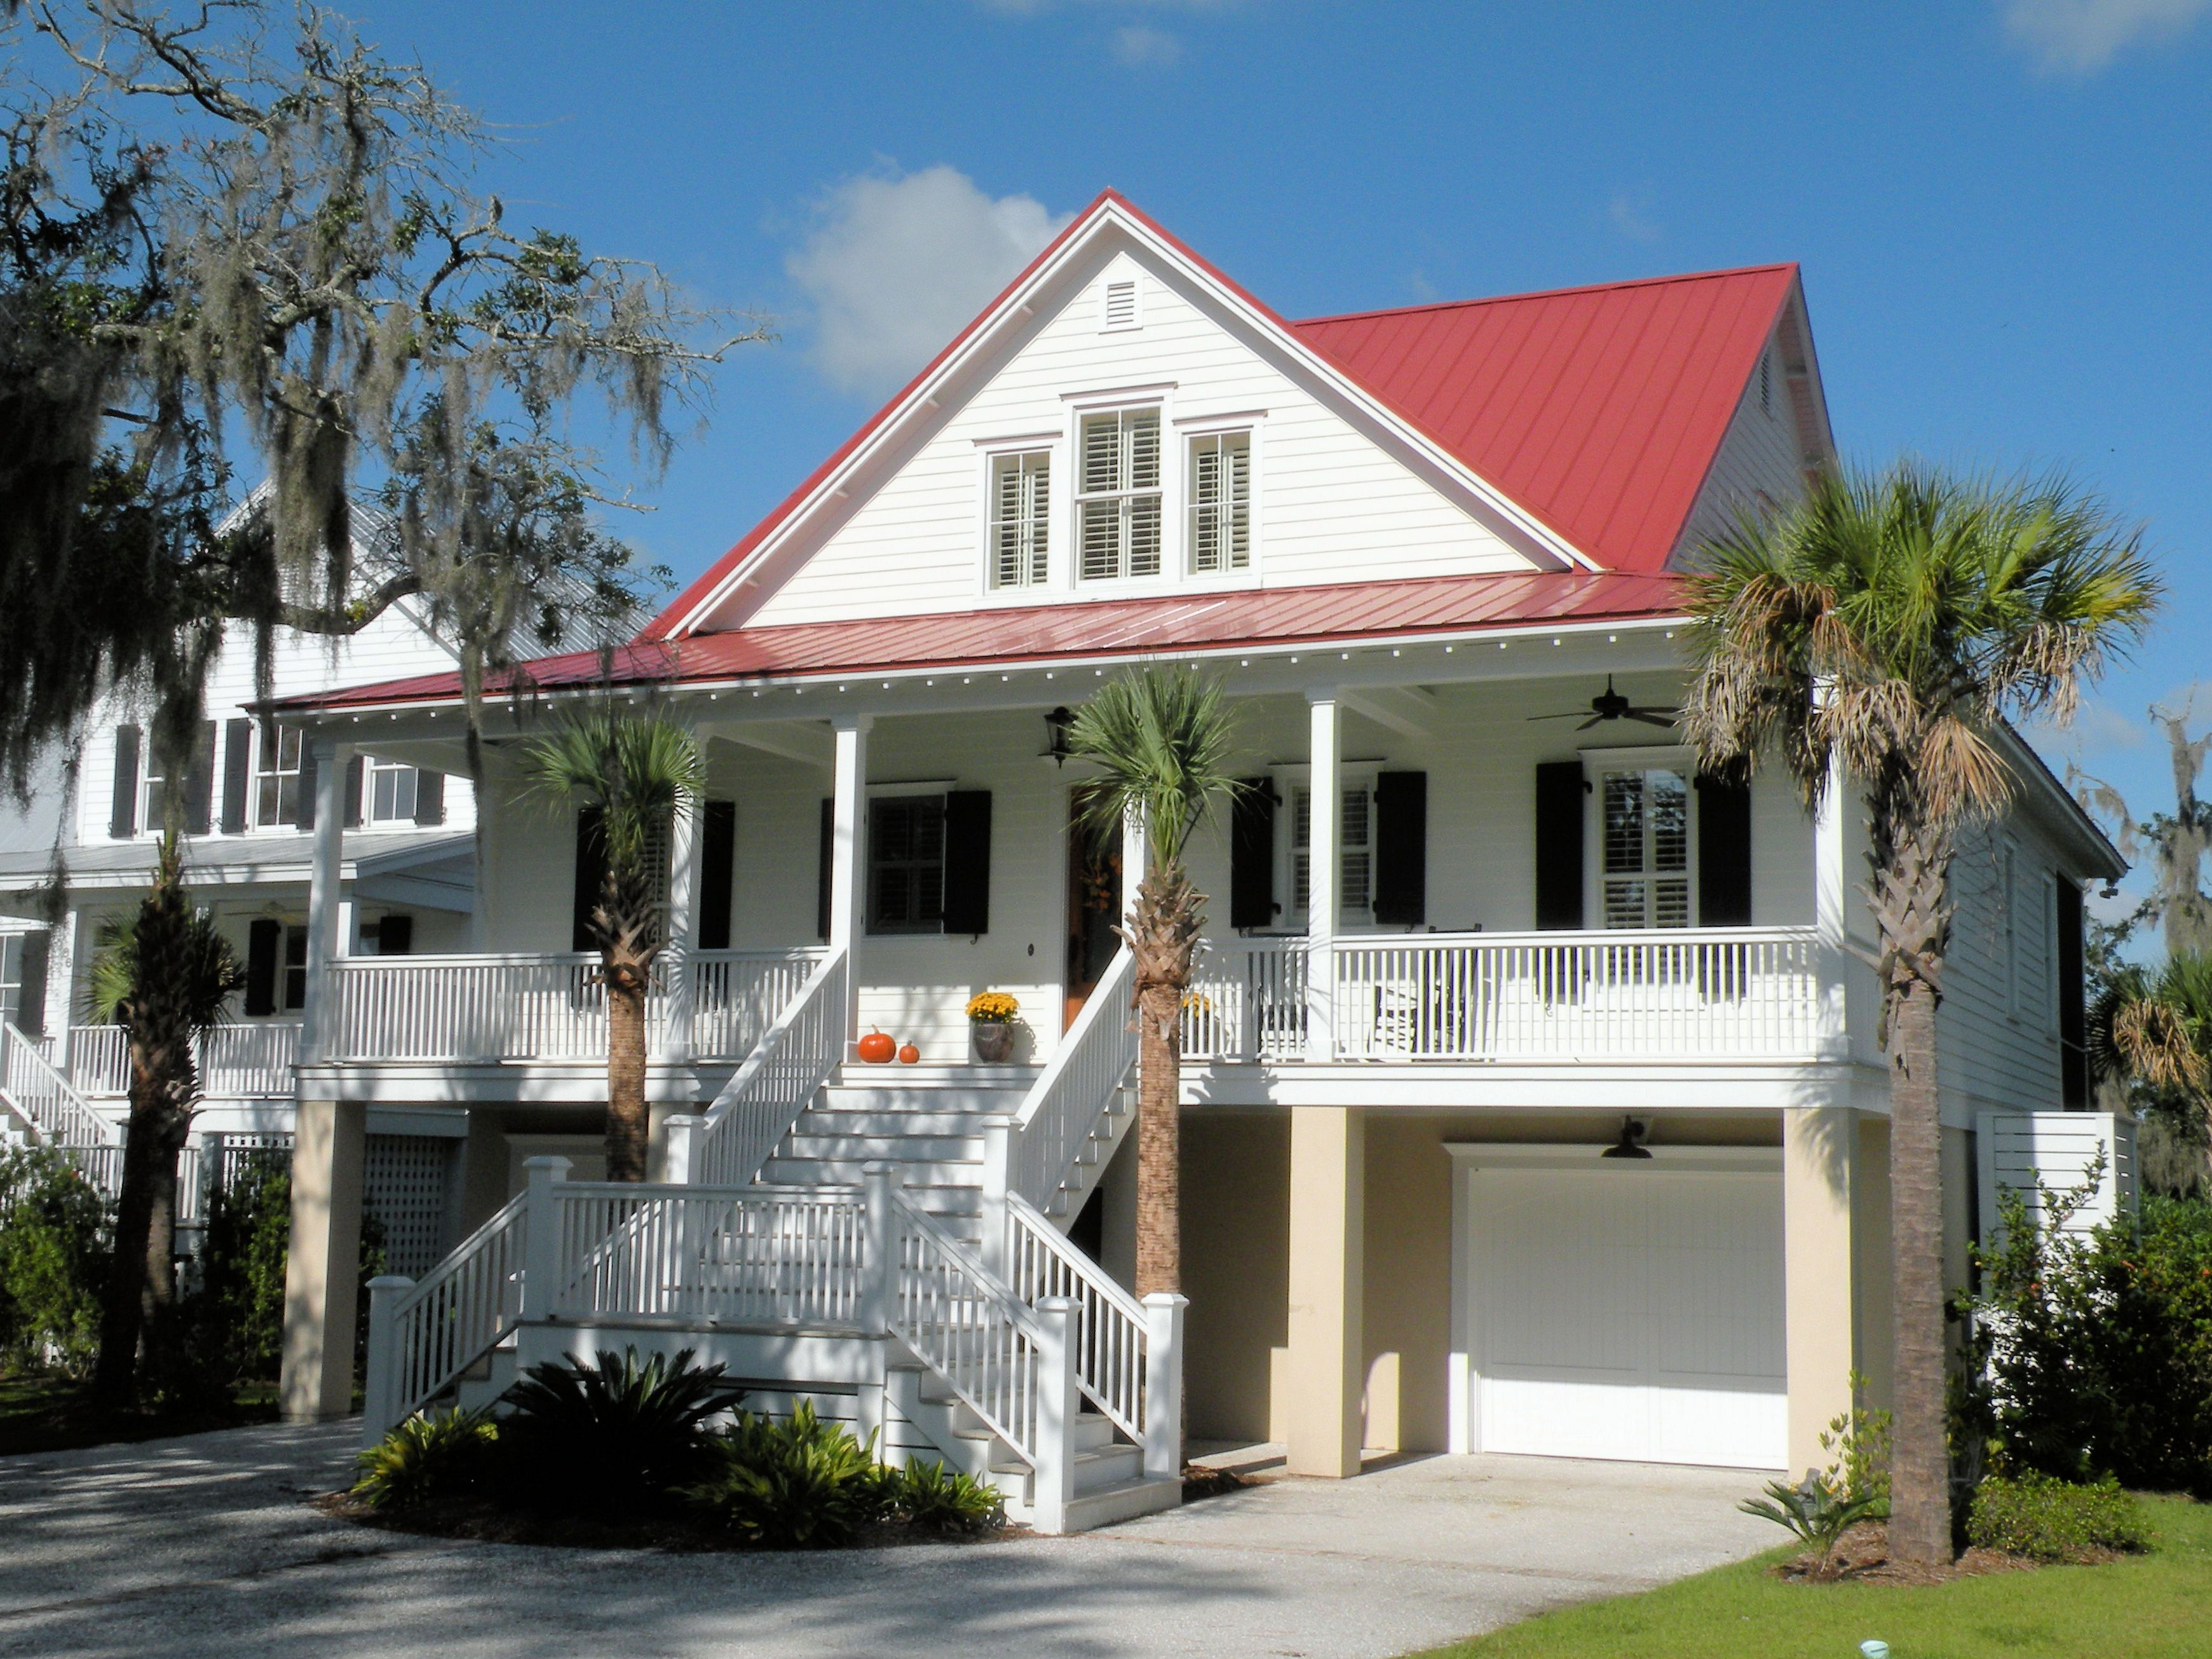 Classic Low Country Home Plan Low Country Homes Country House Plans Coastal House Plans